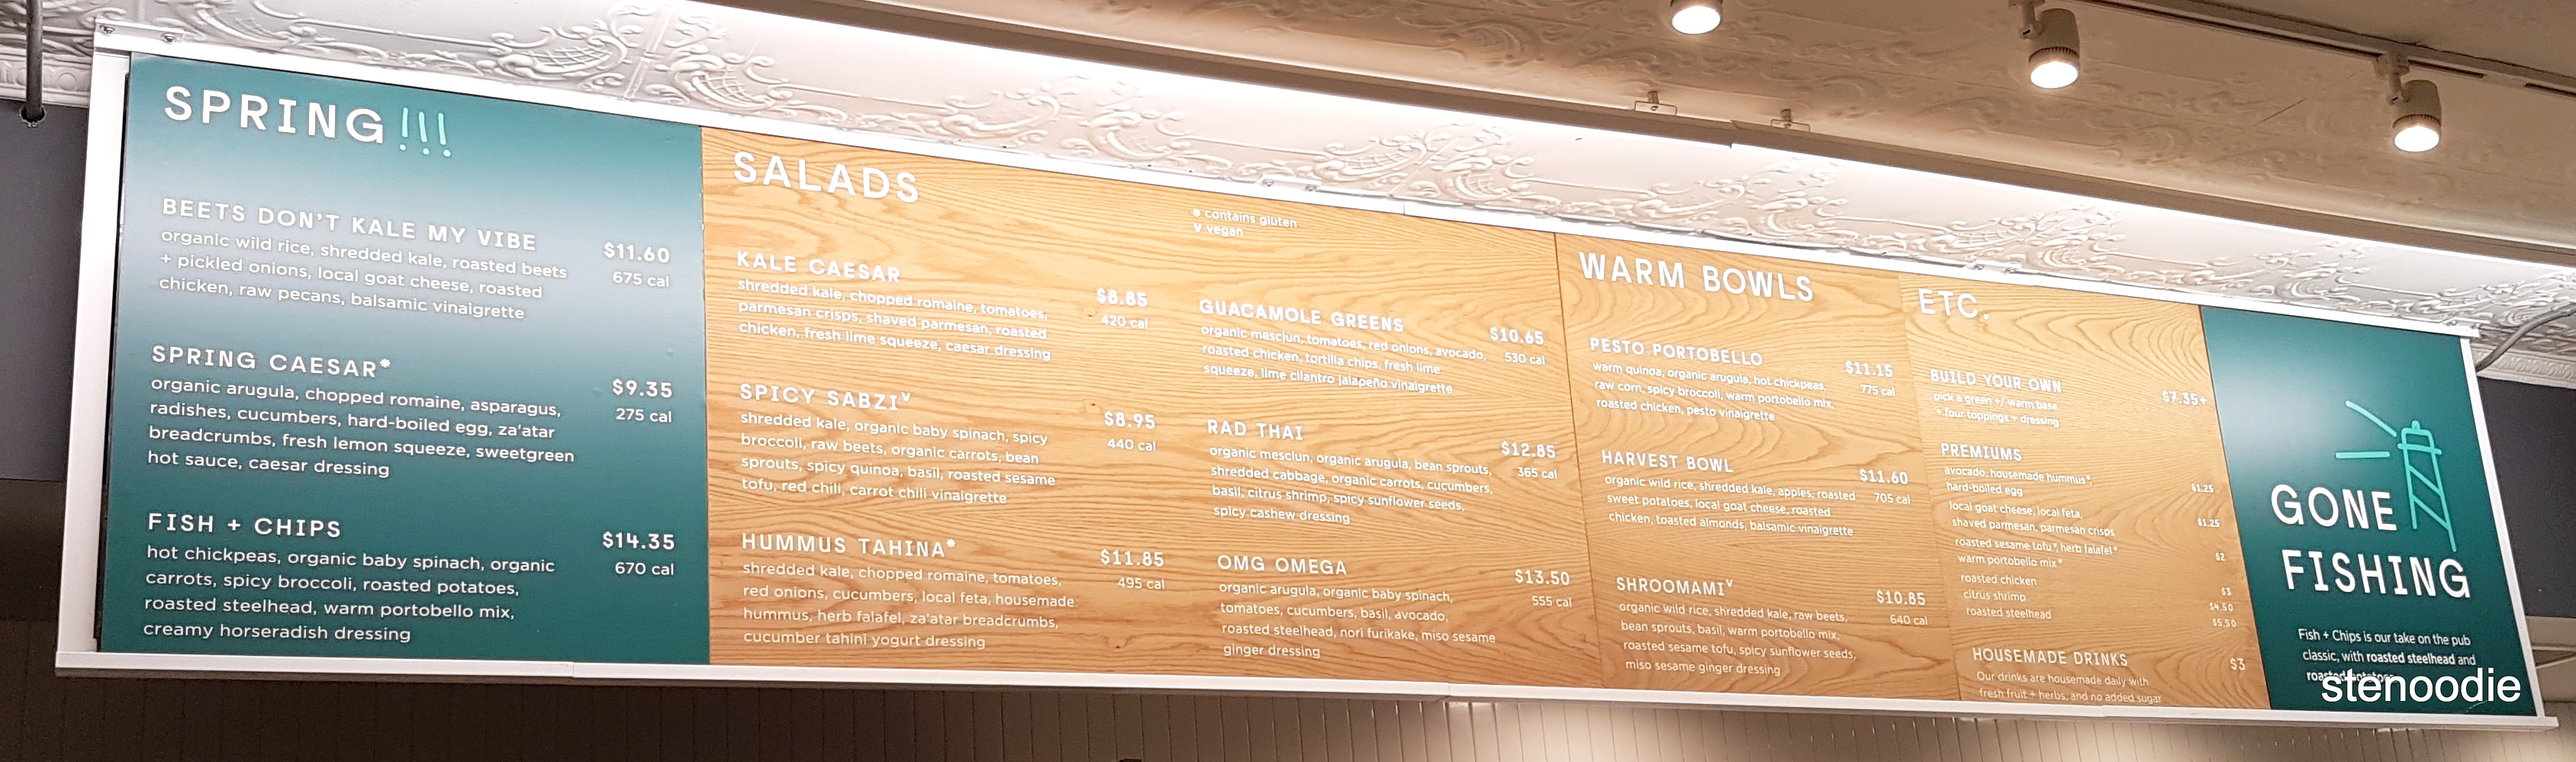 Sweetgreen menu and prices